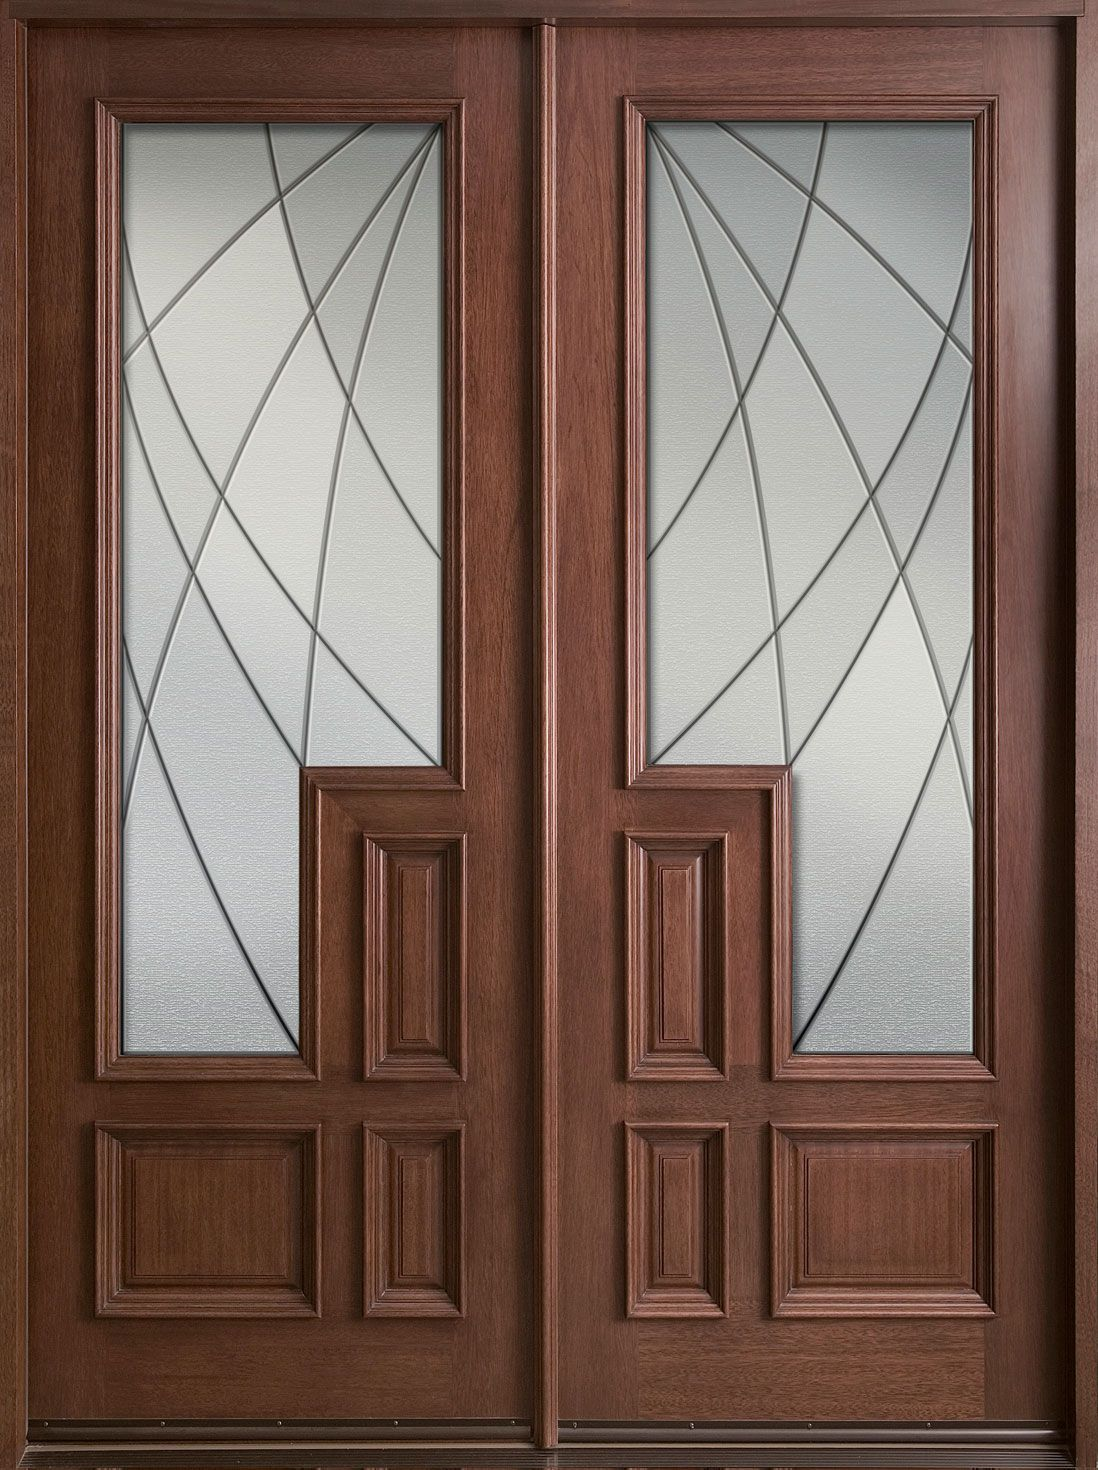 Inspiring double fiberglass entry door as furniture for for Outside doors for homes